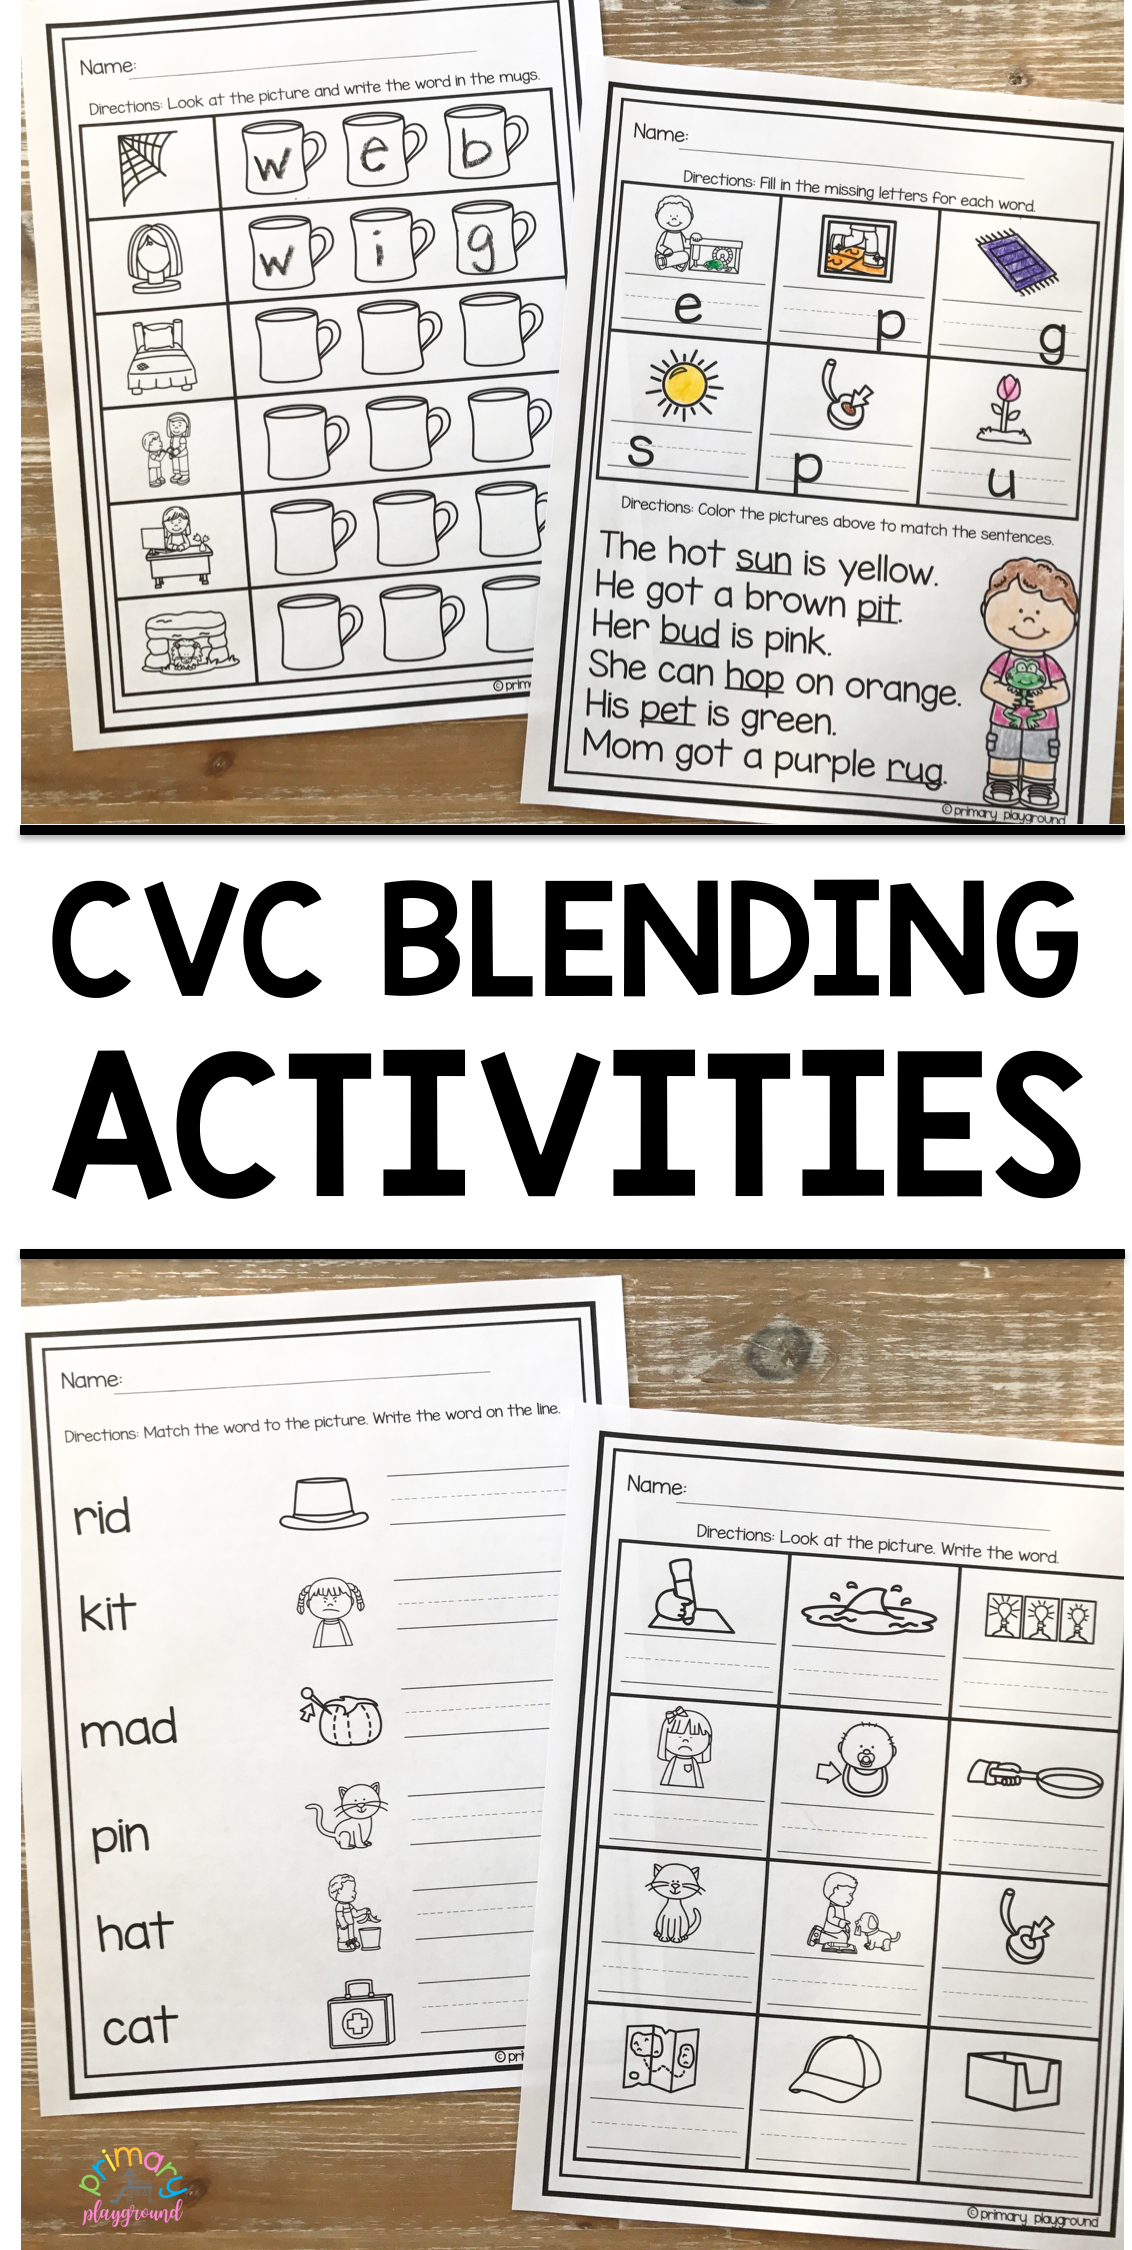 Cvc Blending Activities Spiral Review